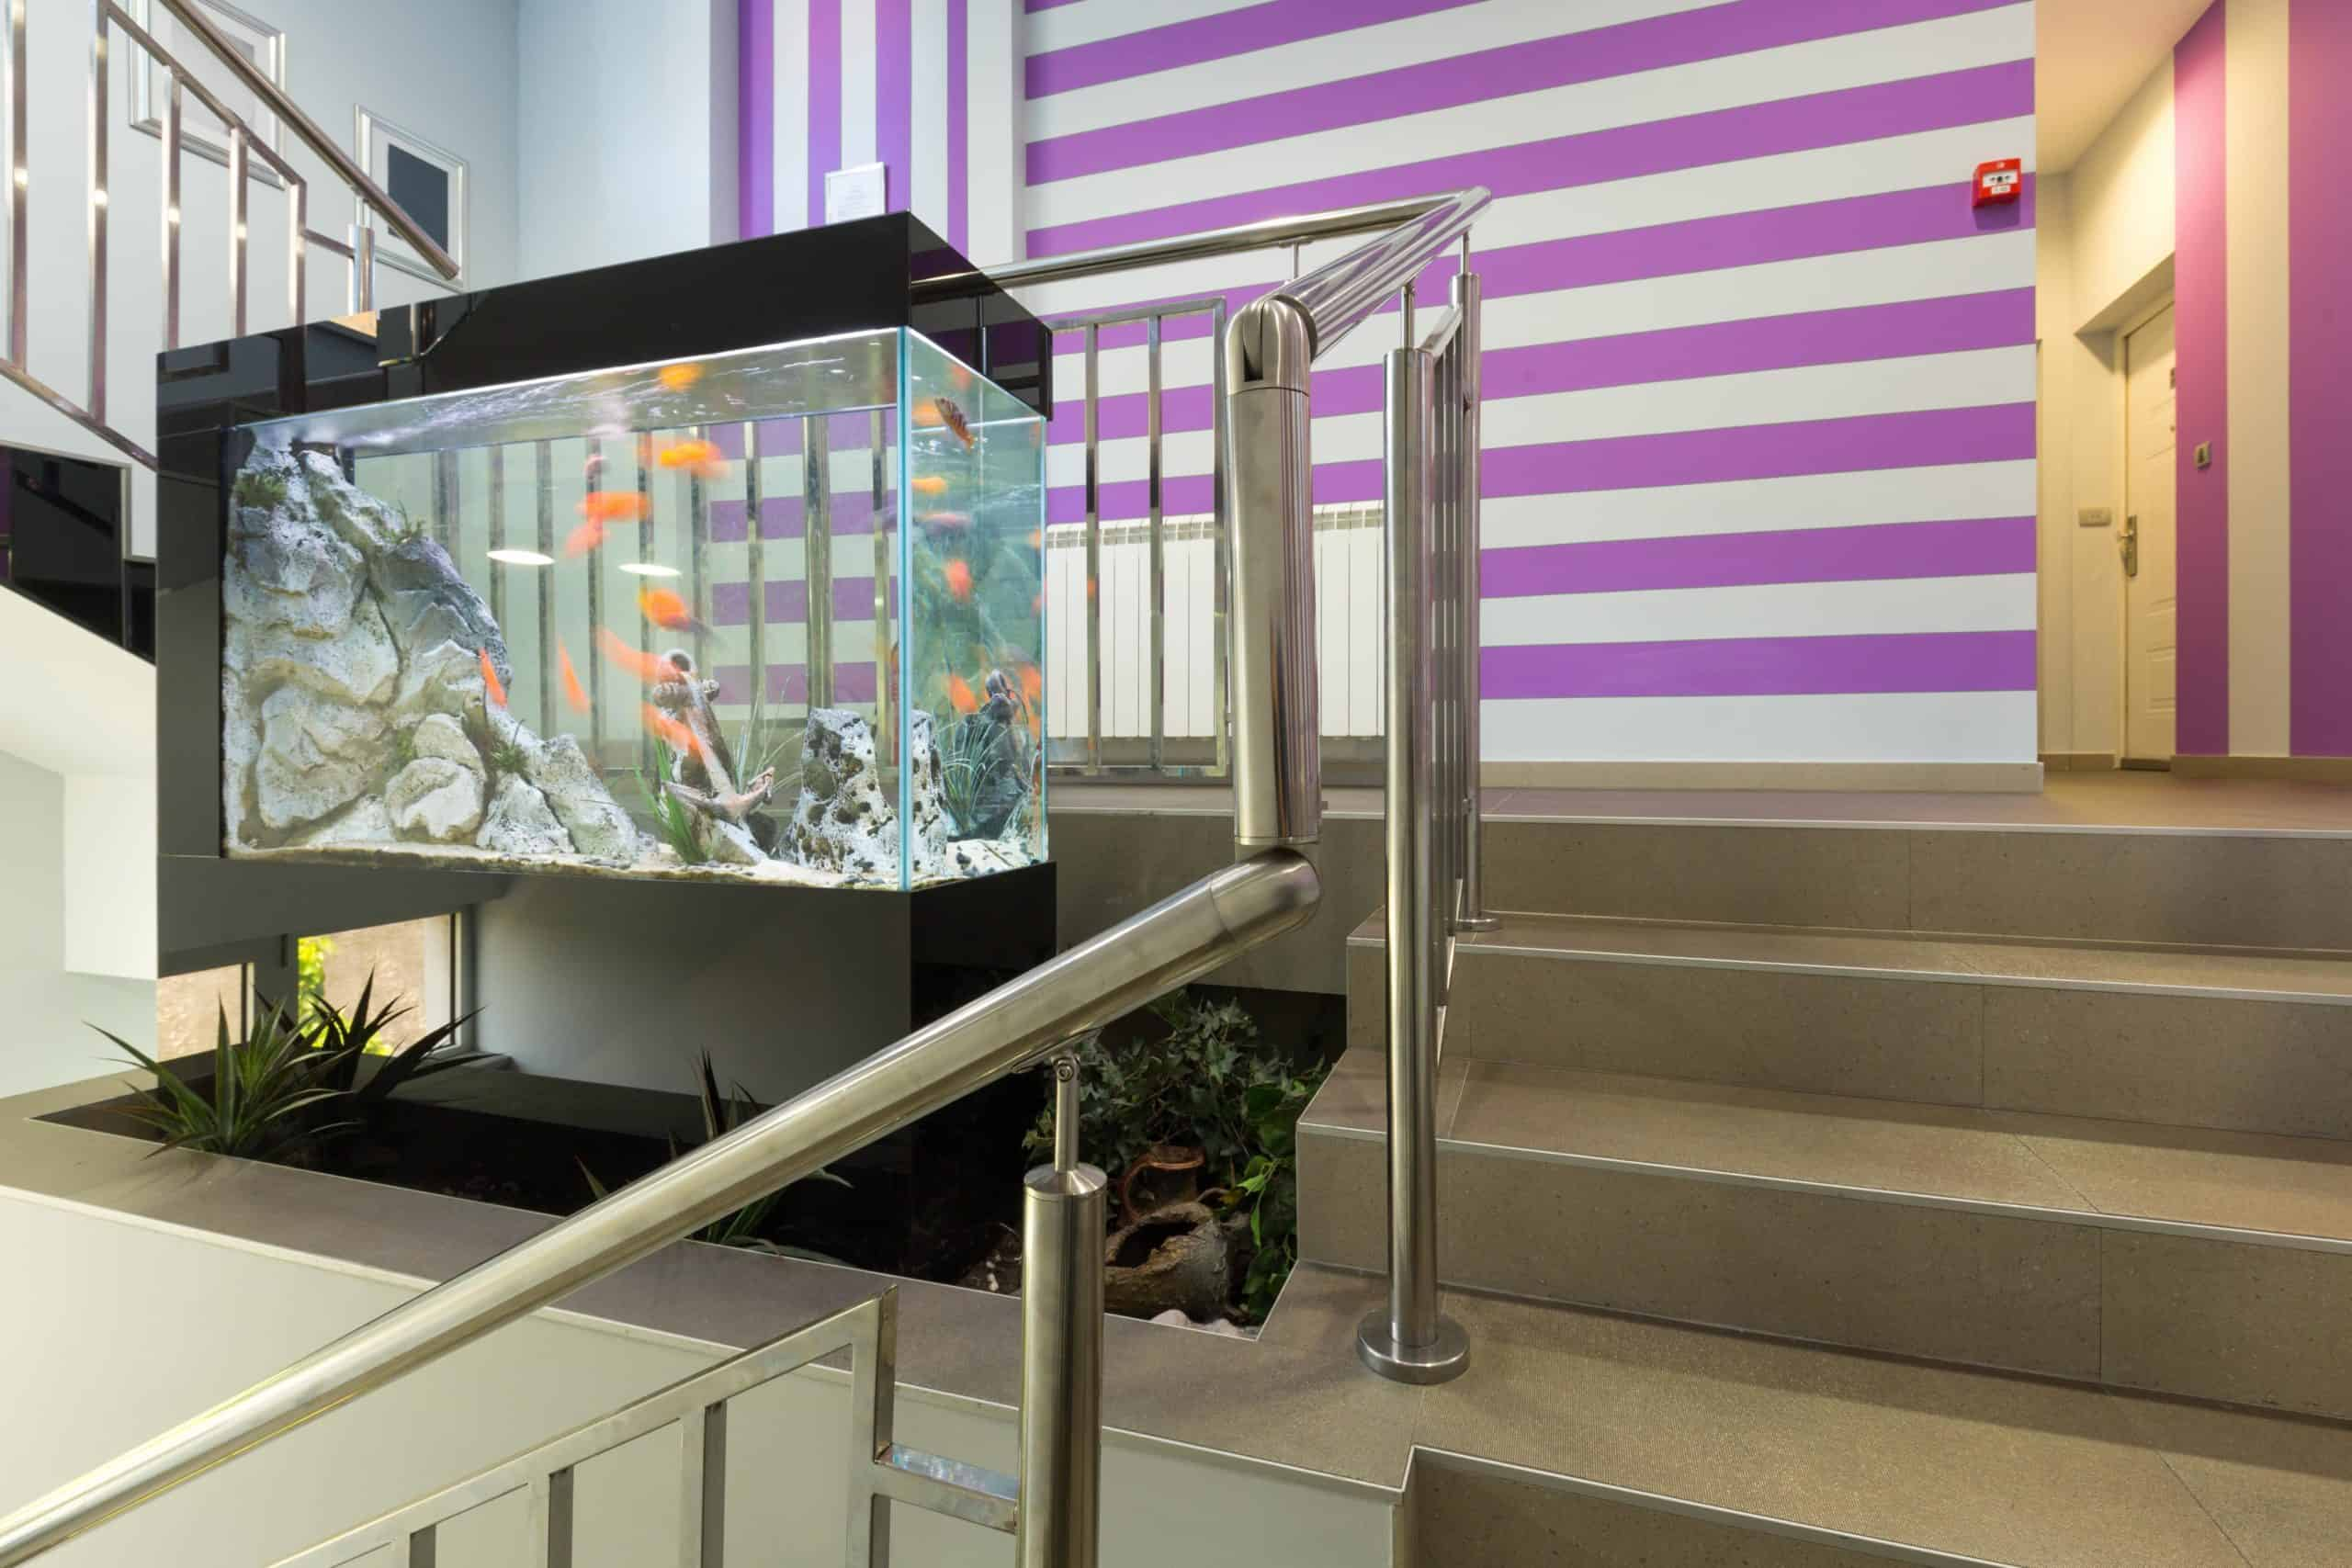 Aquarium location in home. Set your aquarium on a countertop or high shelf out of your dog's reach. Put larger tanks on stands built for safety that are tucked out of reach in an alcove or another spot that's awkward for your dog to get to.